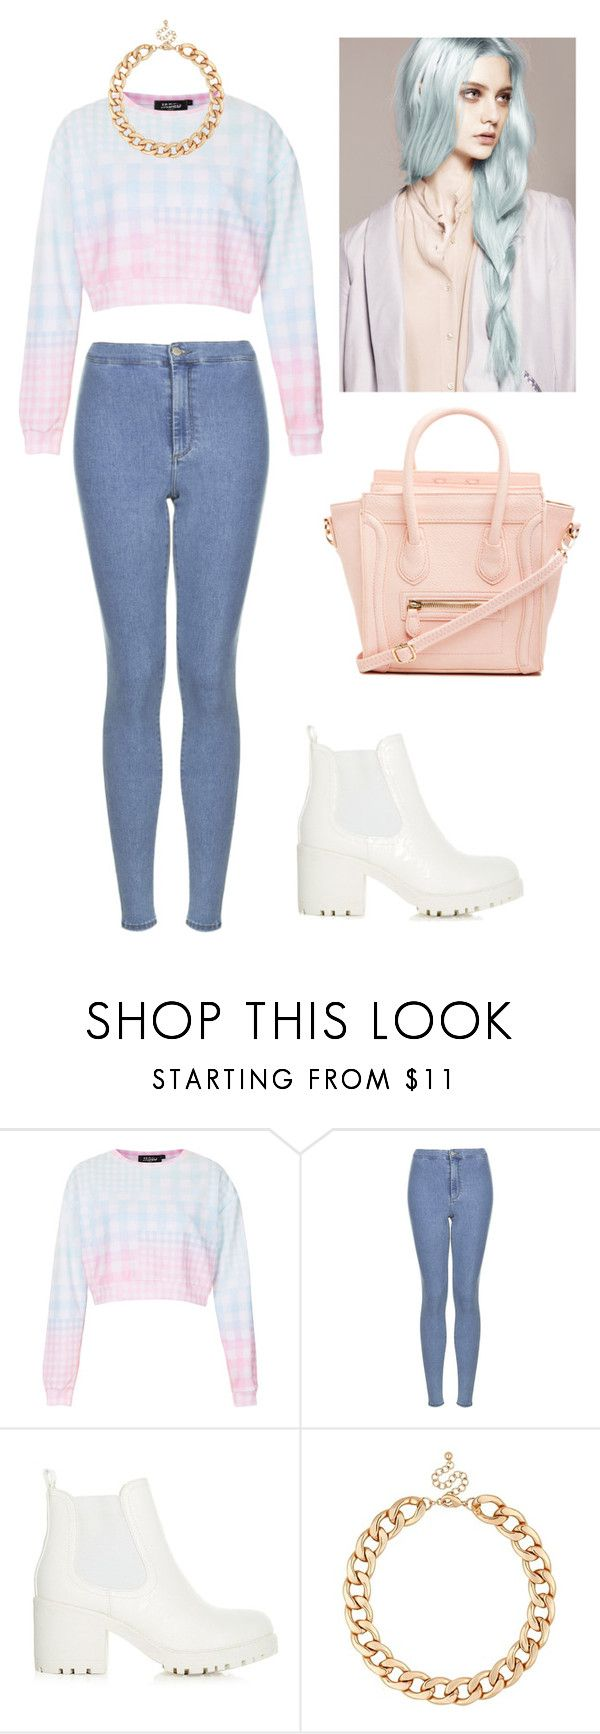 """""""Pastels"""" by momockapai ❤ liked on Polyvore featuring Topshop, MOOD and DailyLook"""